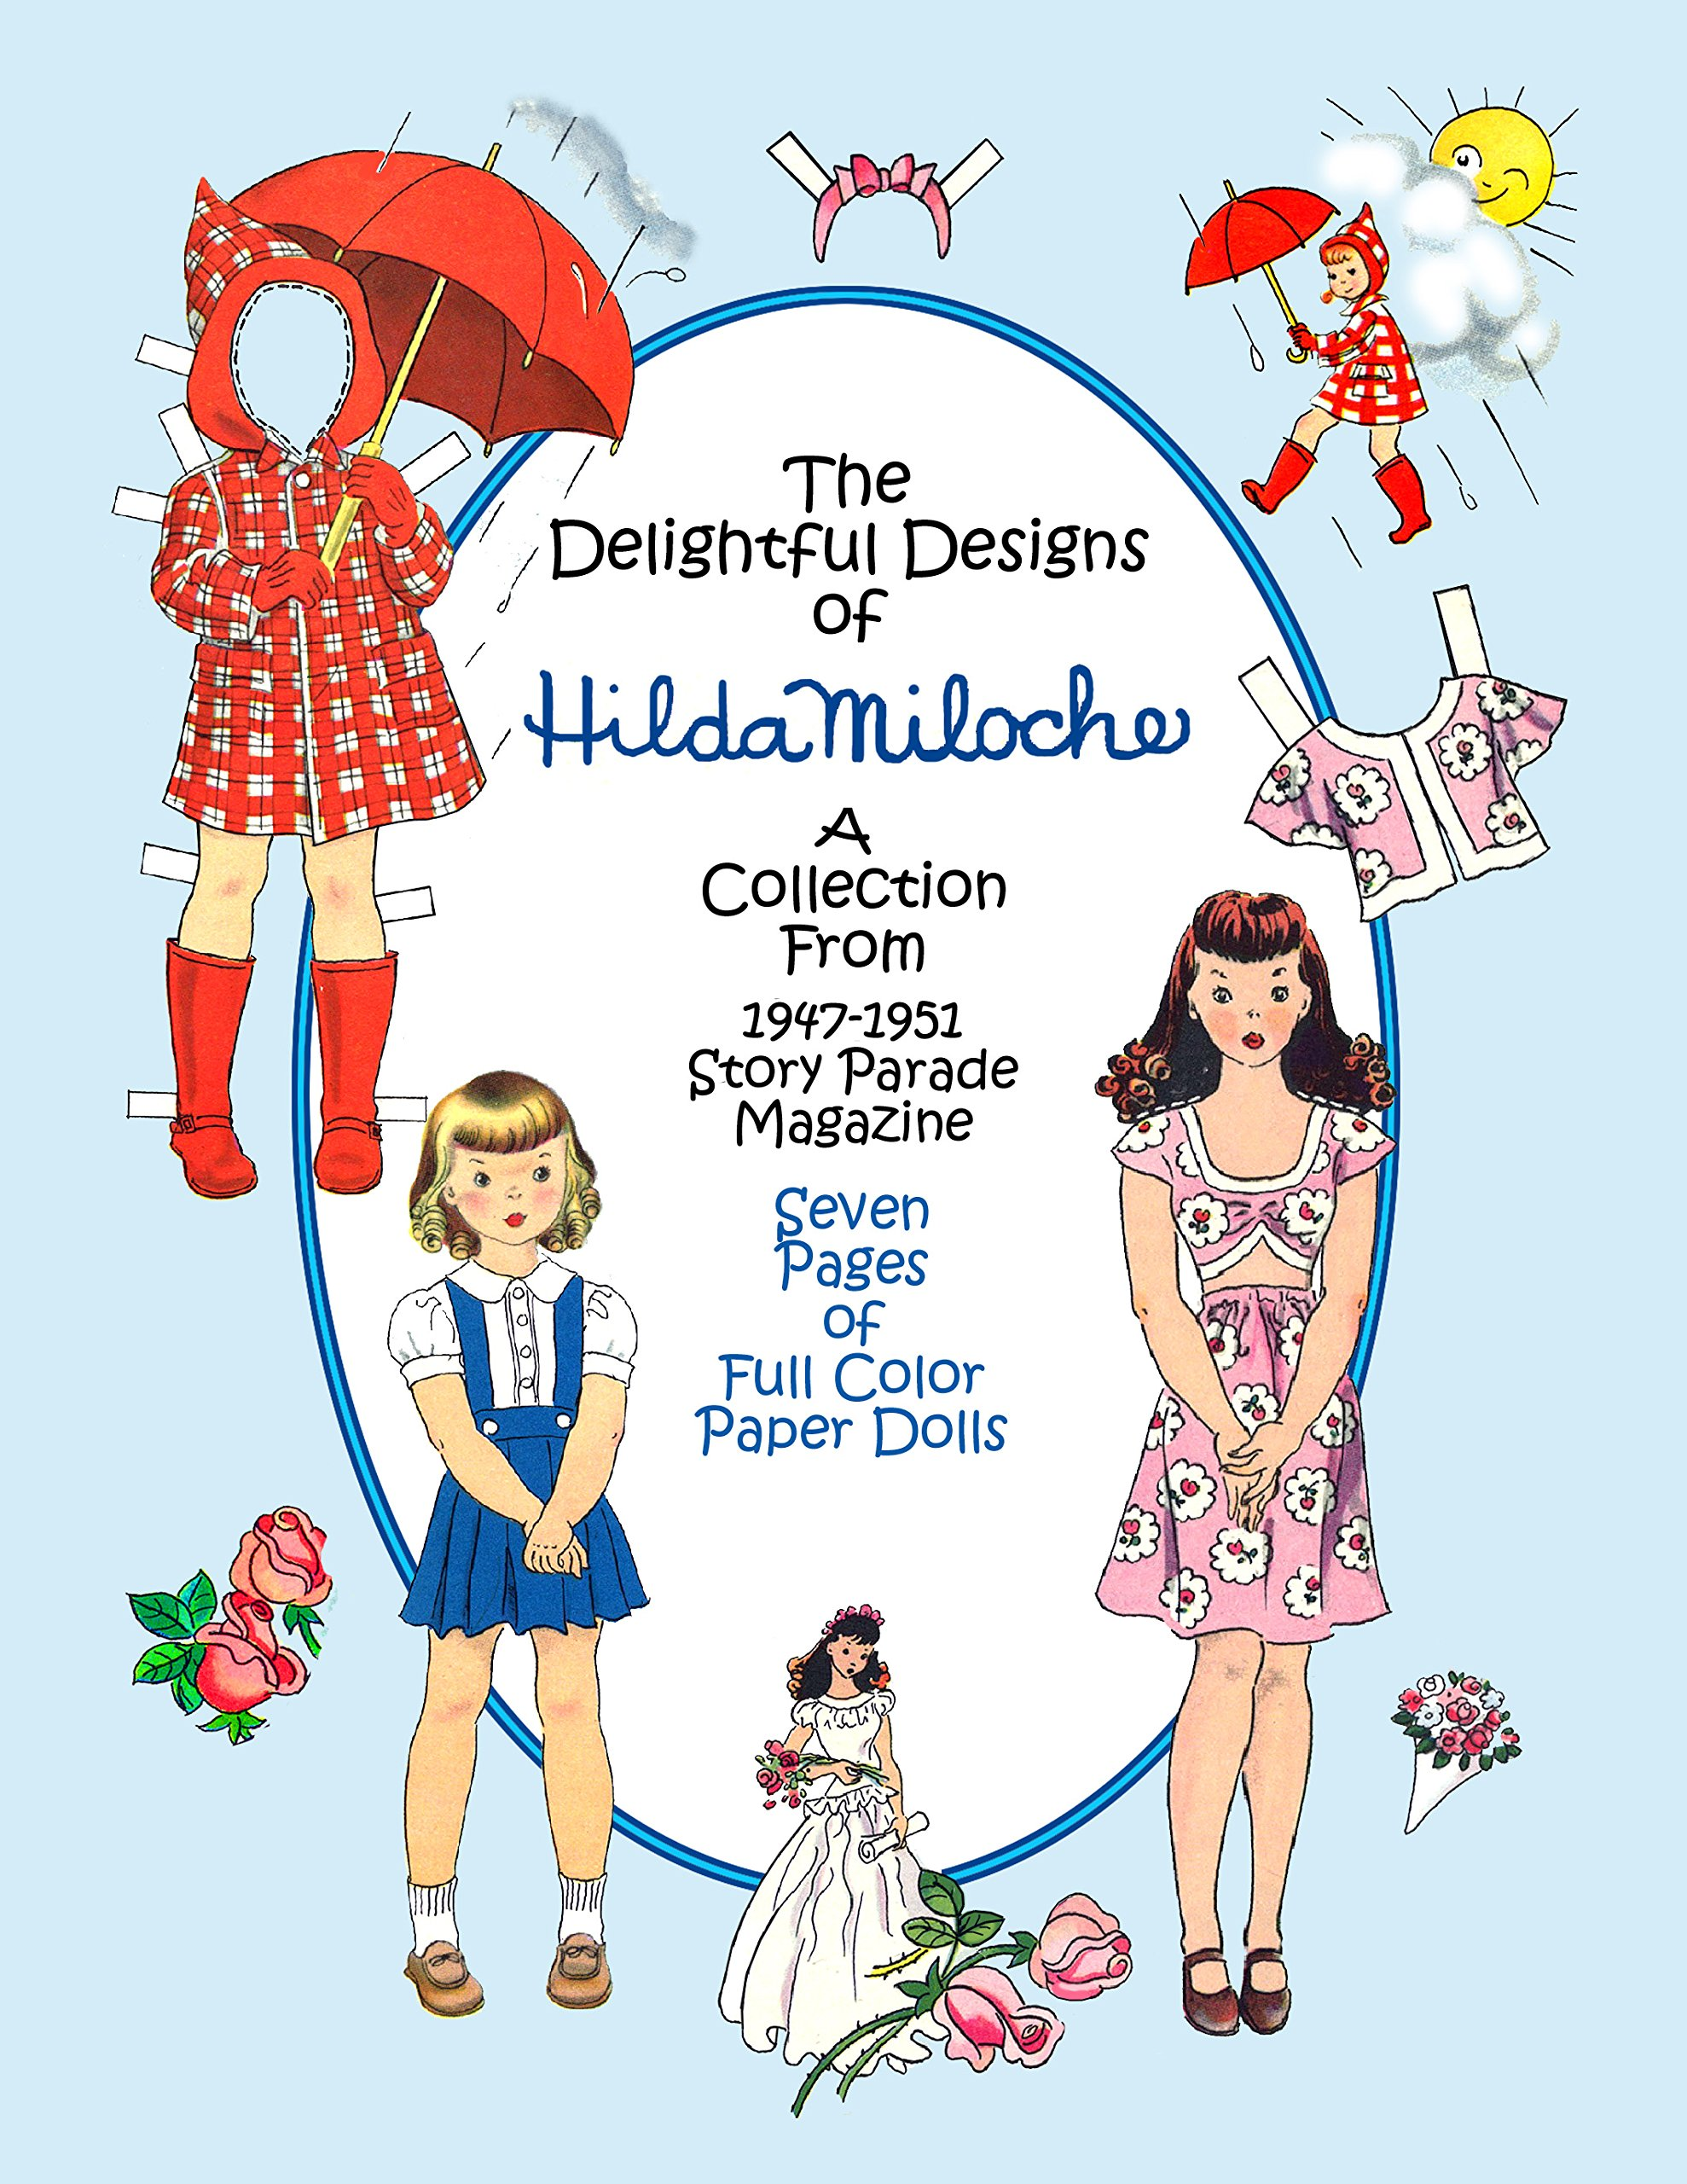 Download Hilda Miloche Paper Doll Collection I, #0554 pdf epub